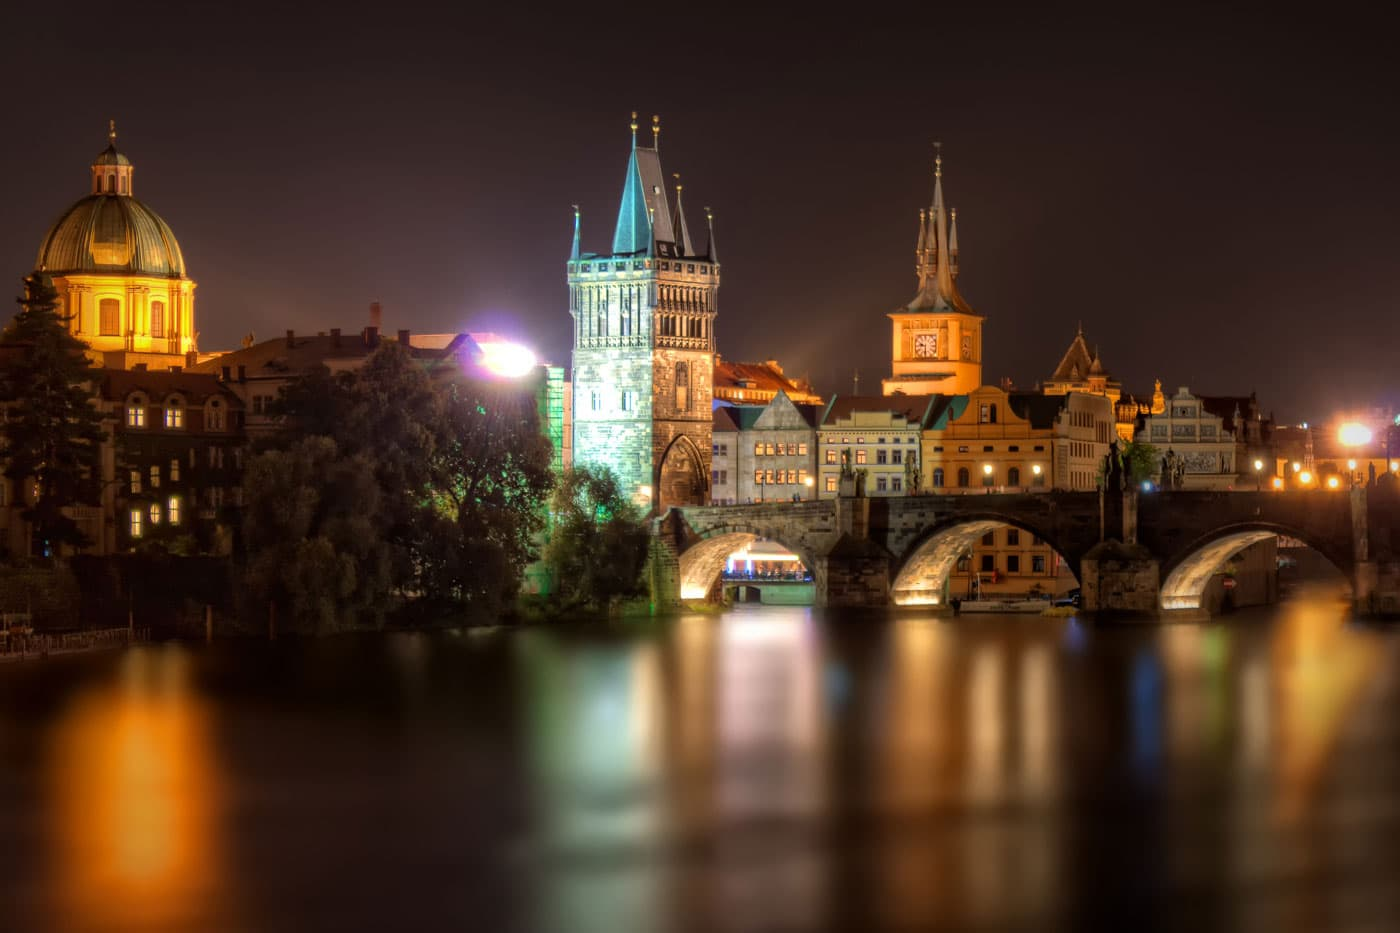 Little Old Town | Prag, Tschechien